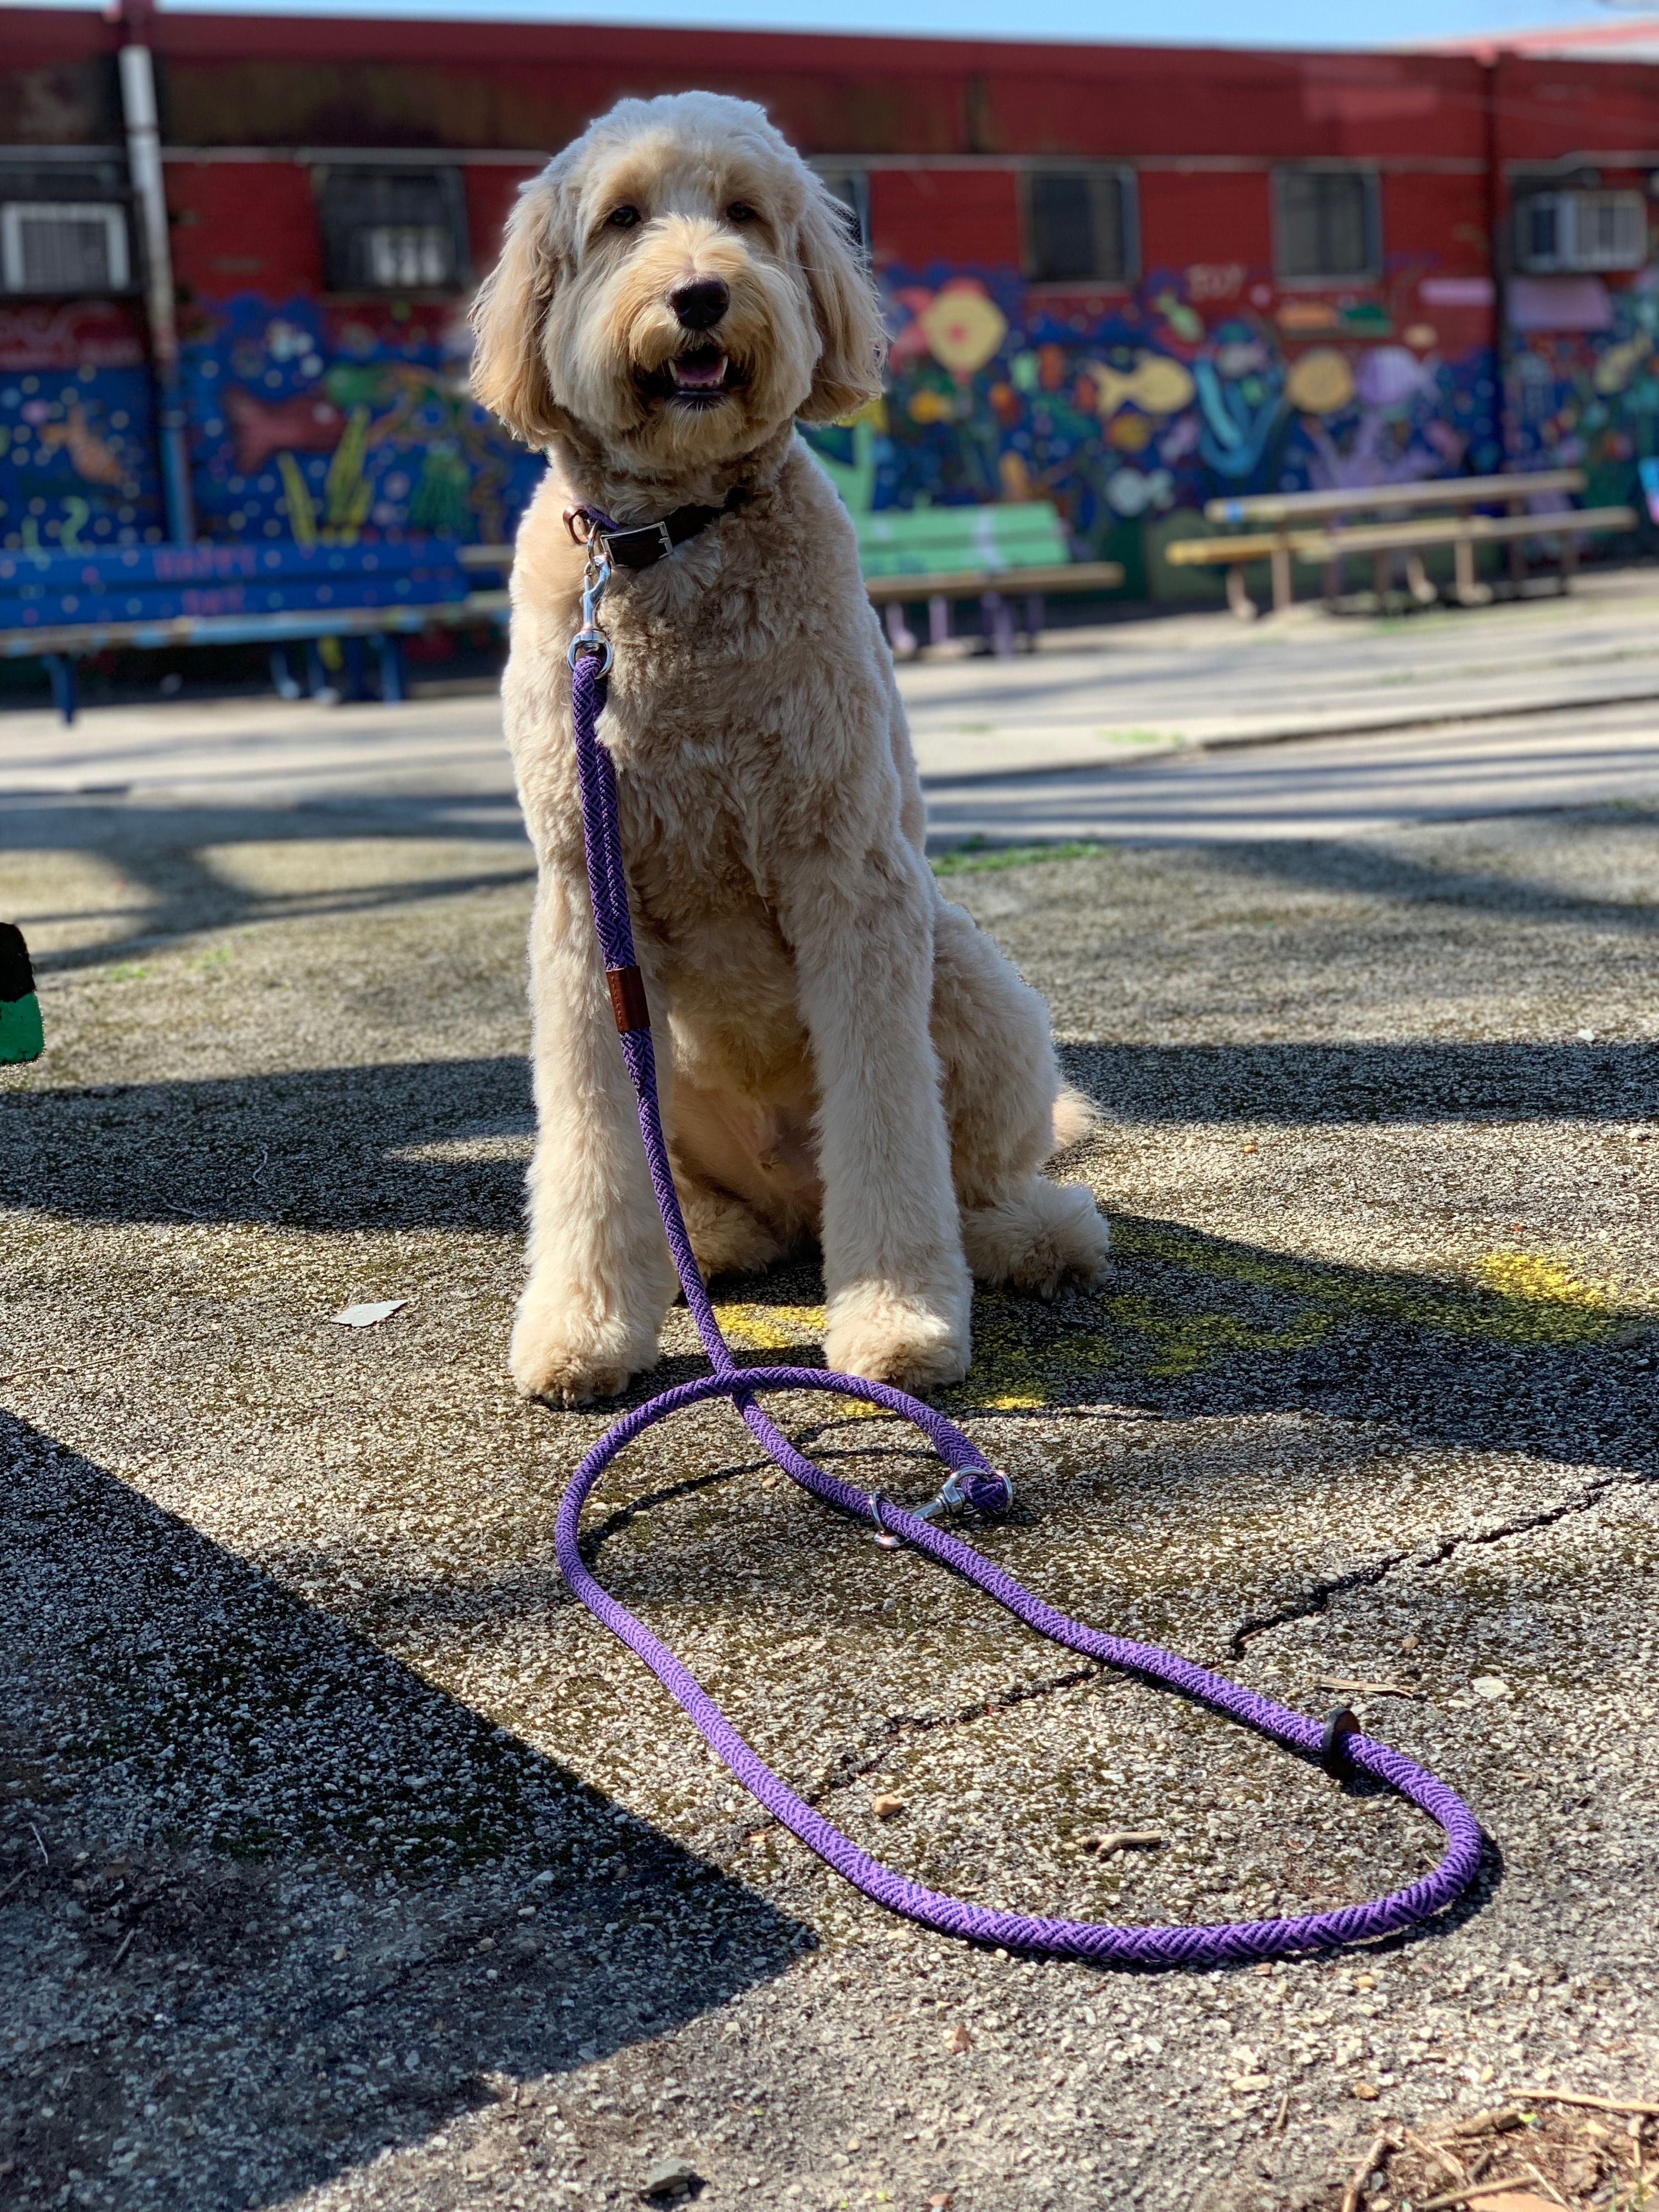 Rope Leash Easiest Dogs To Train Dog Training Dog Care